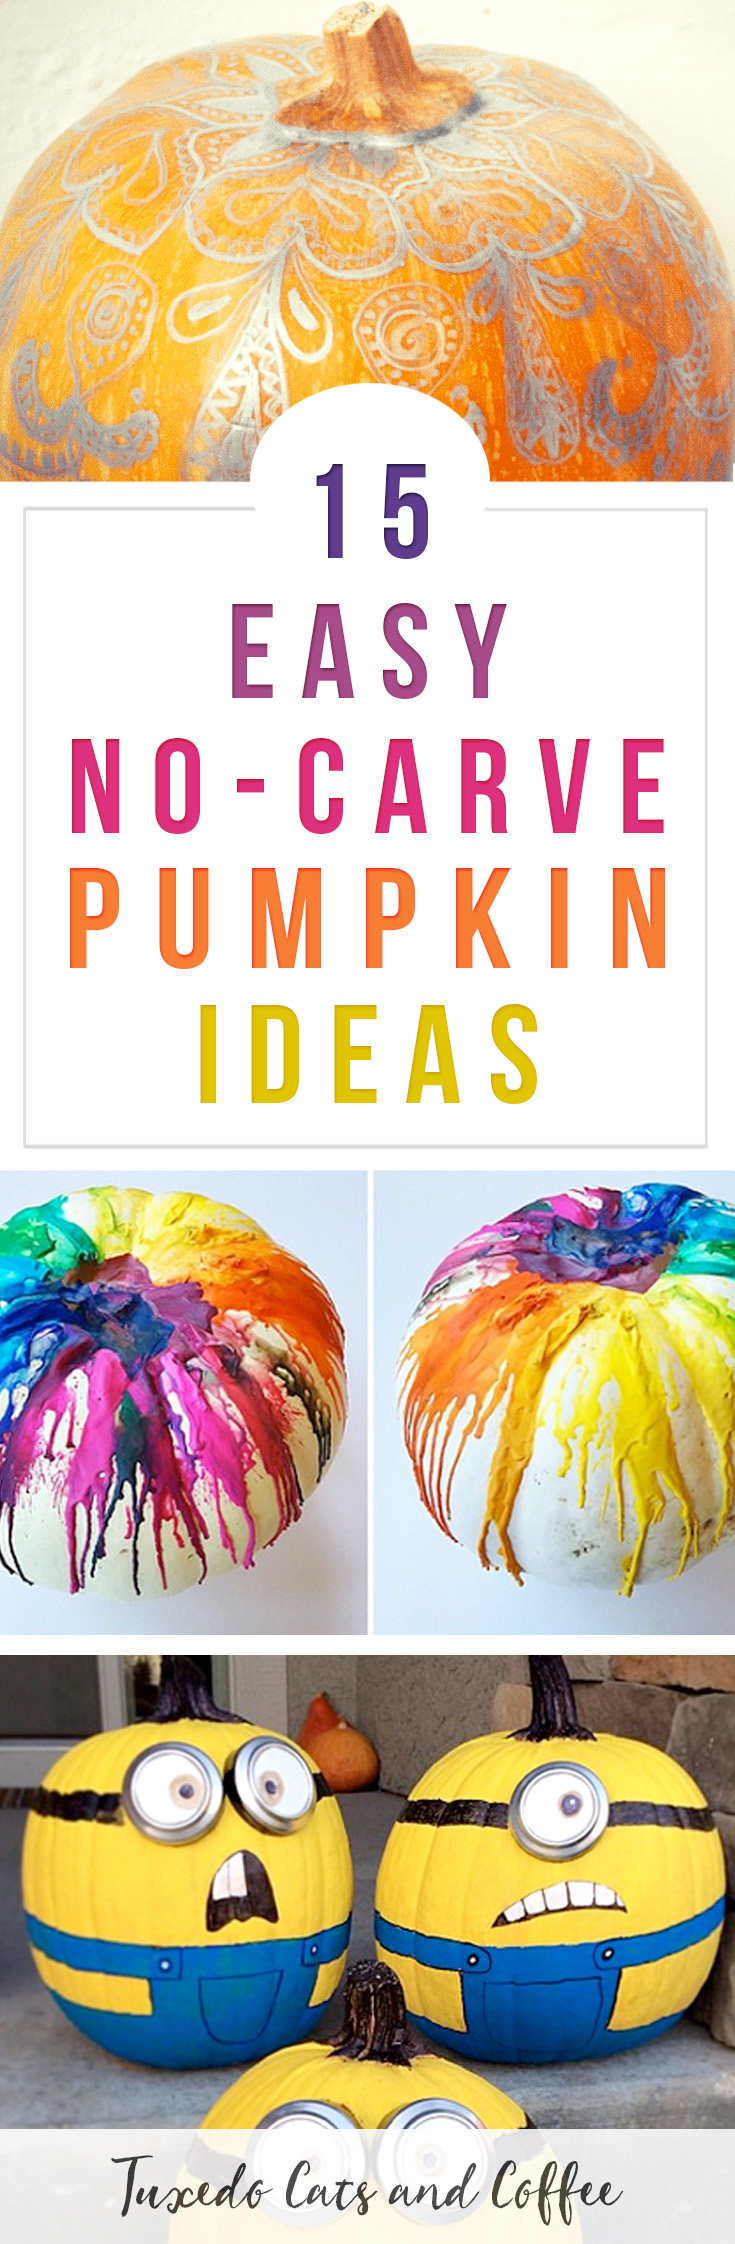 15 Easy NoCarve Pumpkin Ideas That Anyone Can Make